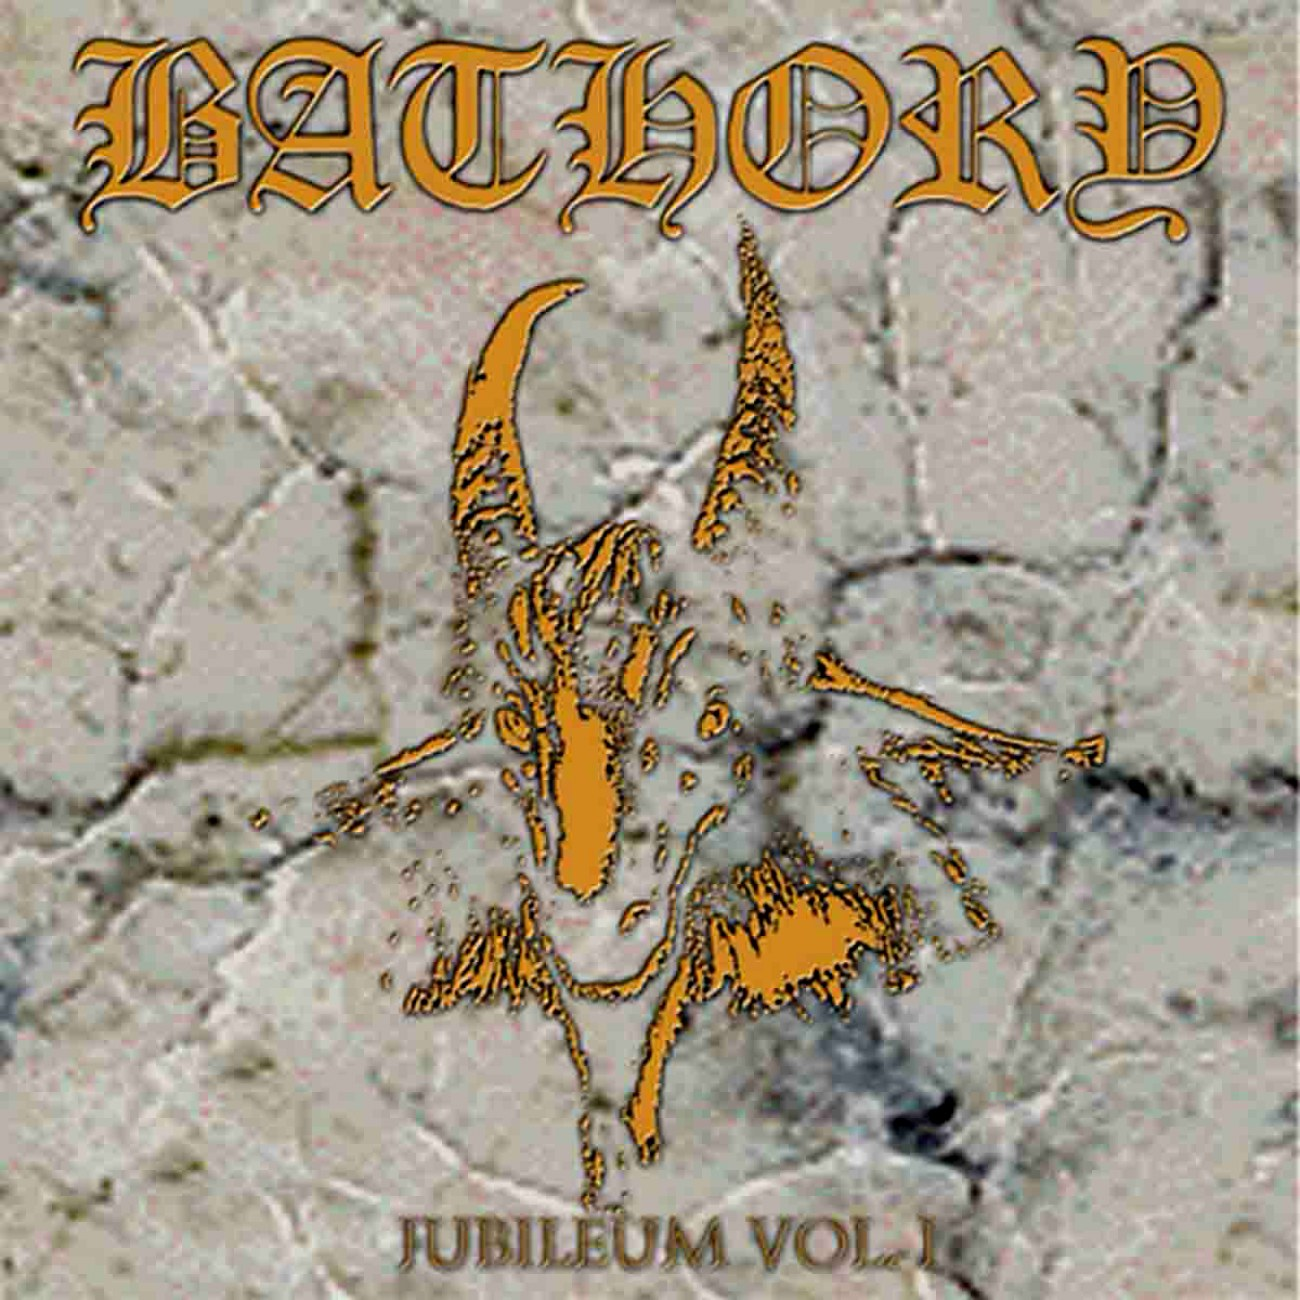 Review for Bathory - Jubileum (Vol. I)